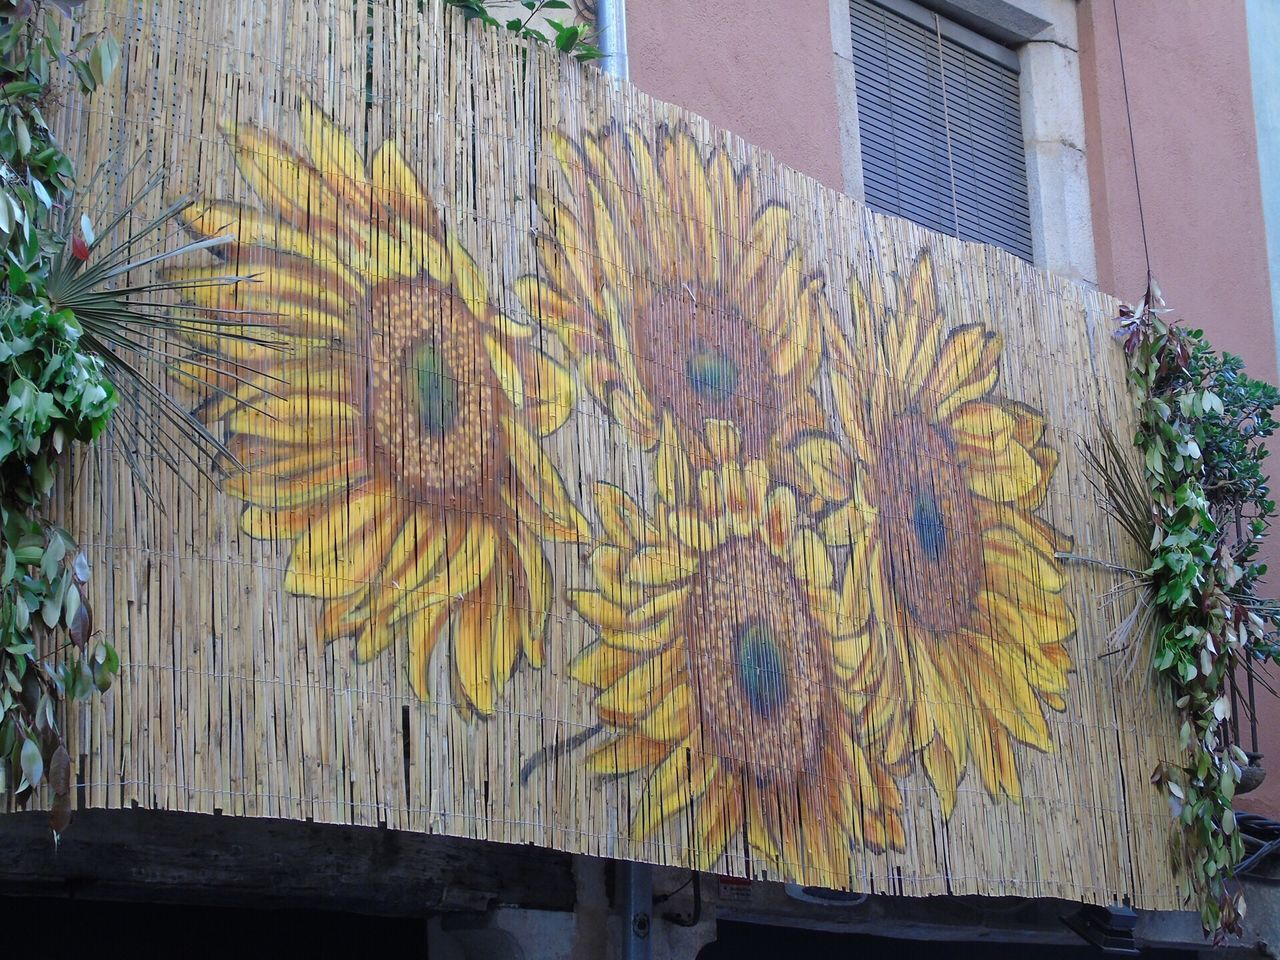 Building Exterior Built Structure Architecture Outdoors Yellow Day Wood - Material No People Multi Colored Plant Flower Close-up Tree Nature Girona Girona Temps De Flors 2017 Gironamenamora